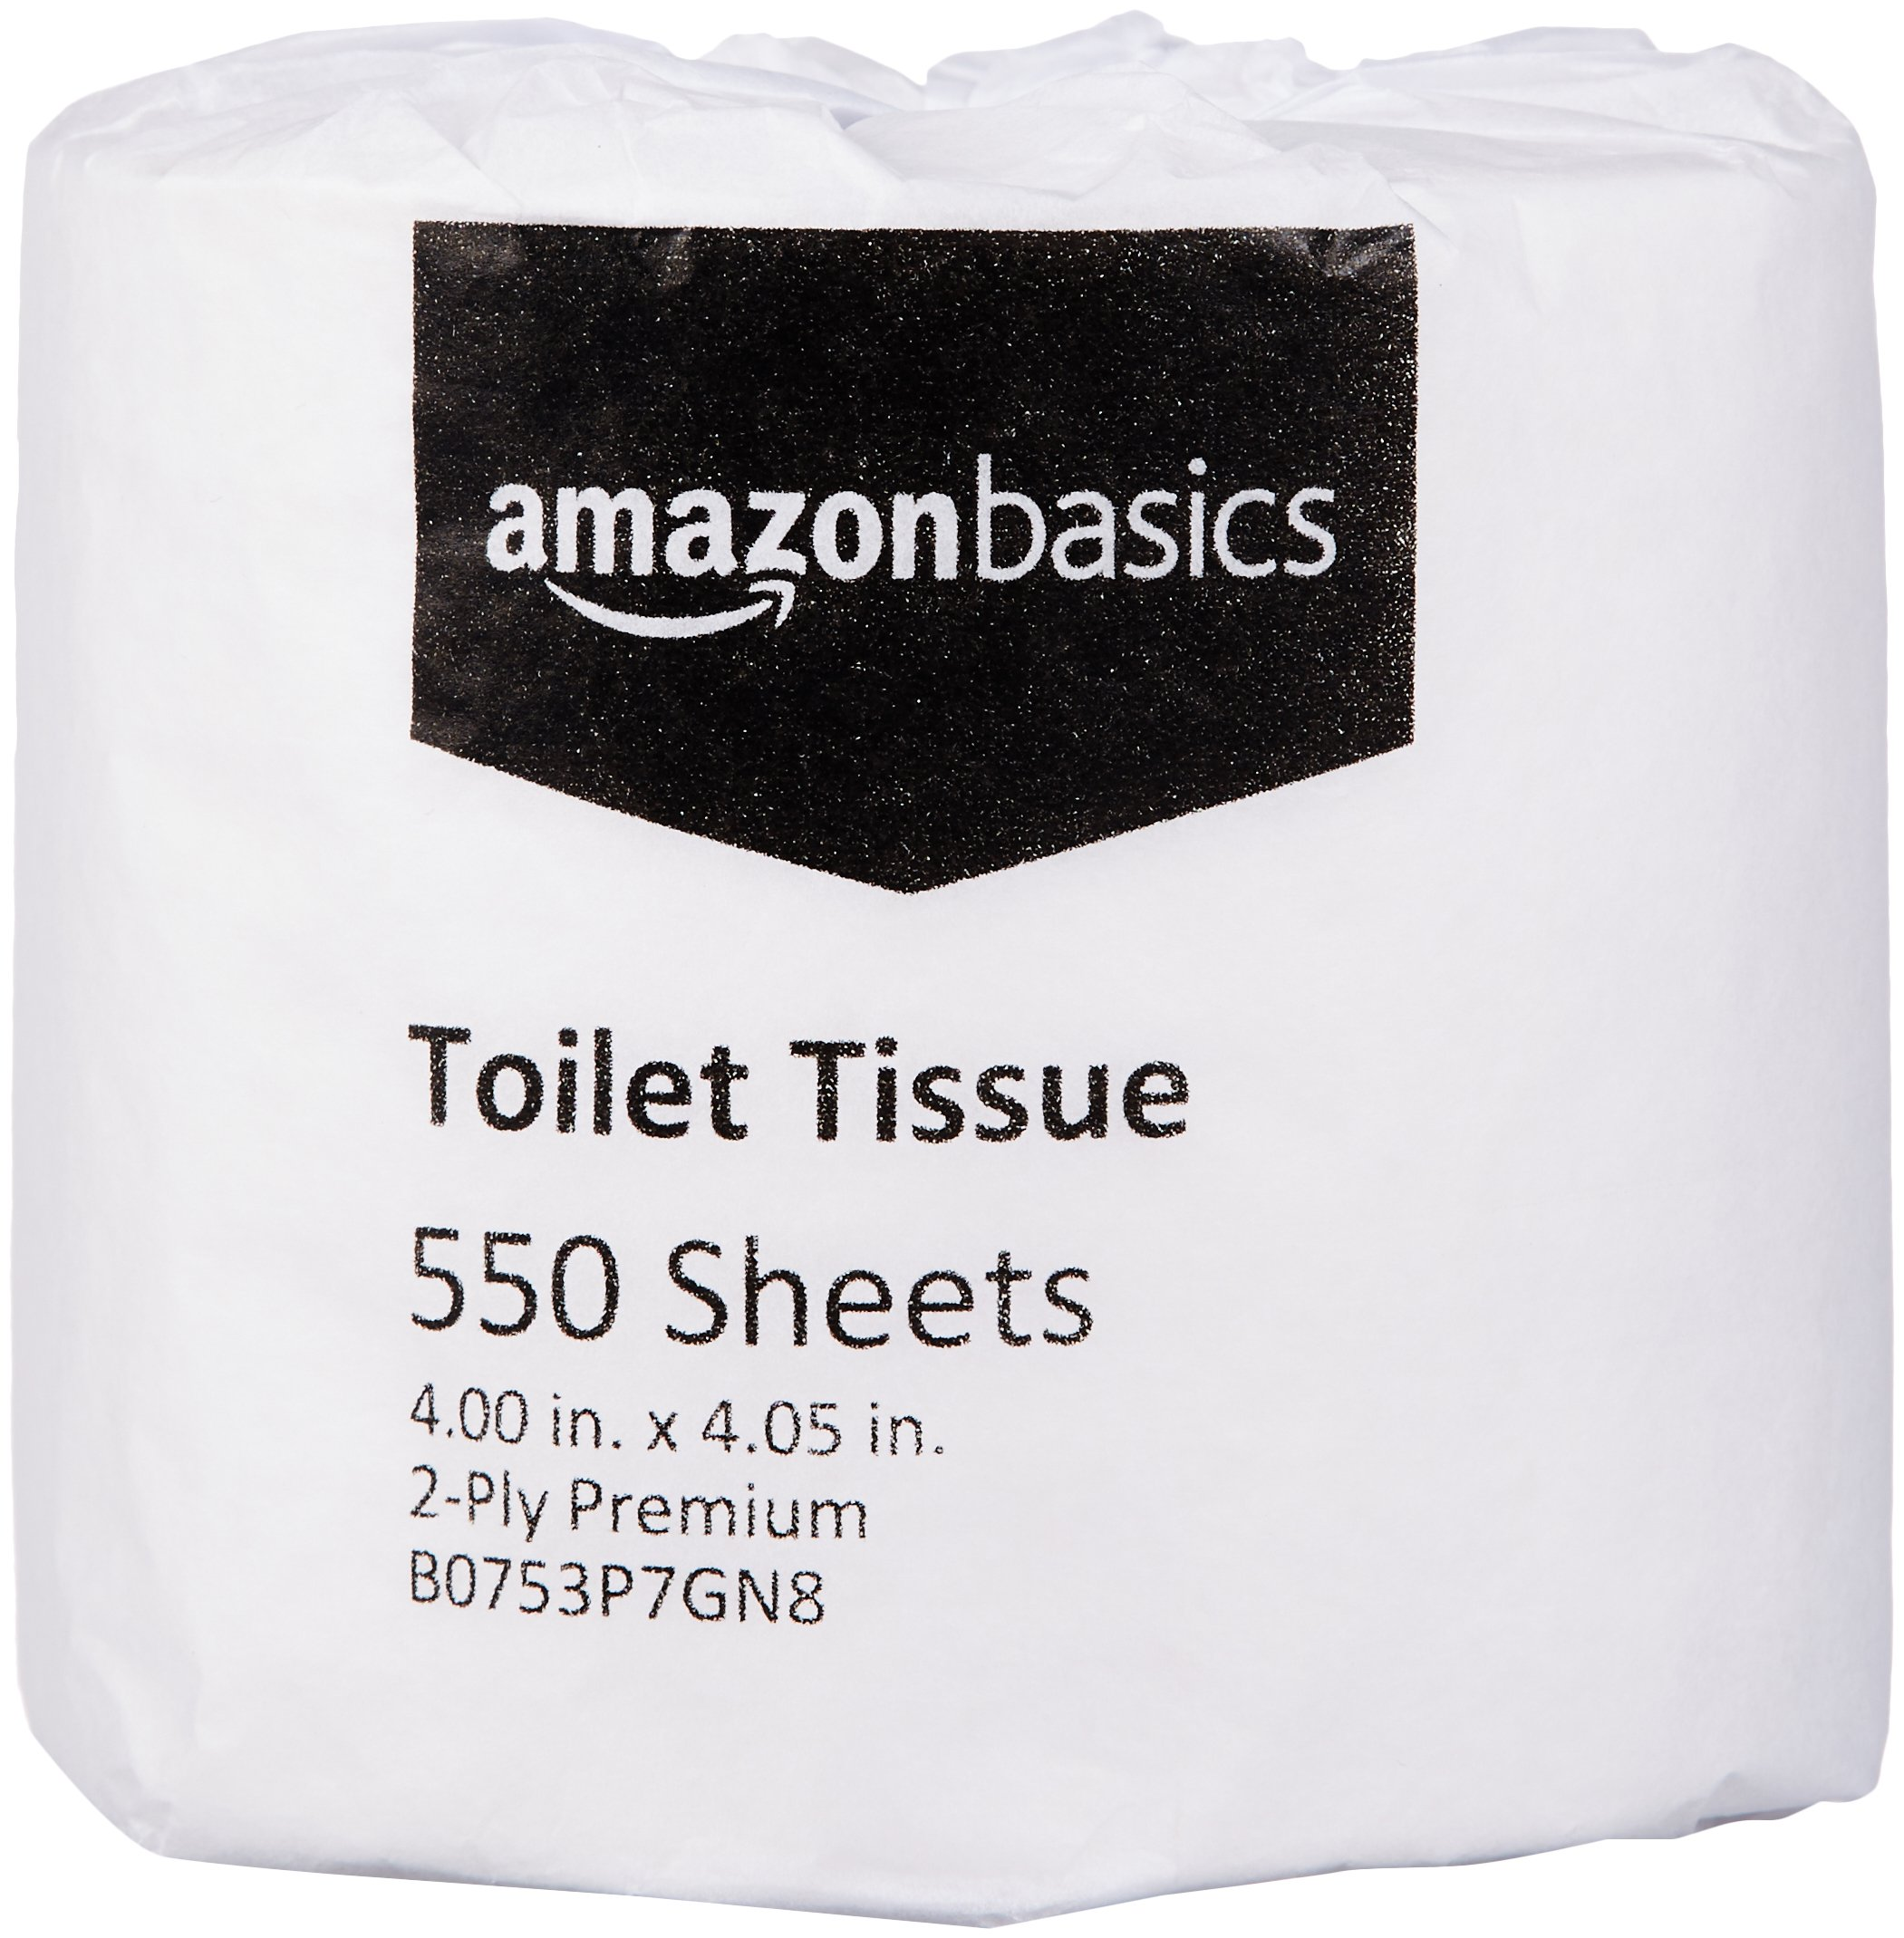 AmazonBasics Professional Toilet Tissue for Businesses, 2-Ply, 550 Sheets per Roll, 80 Rolls